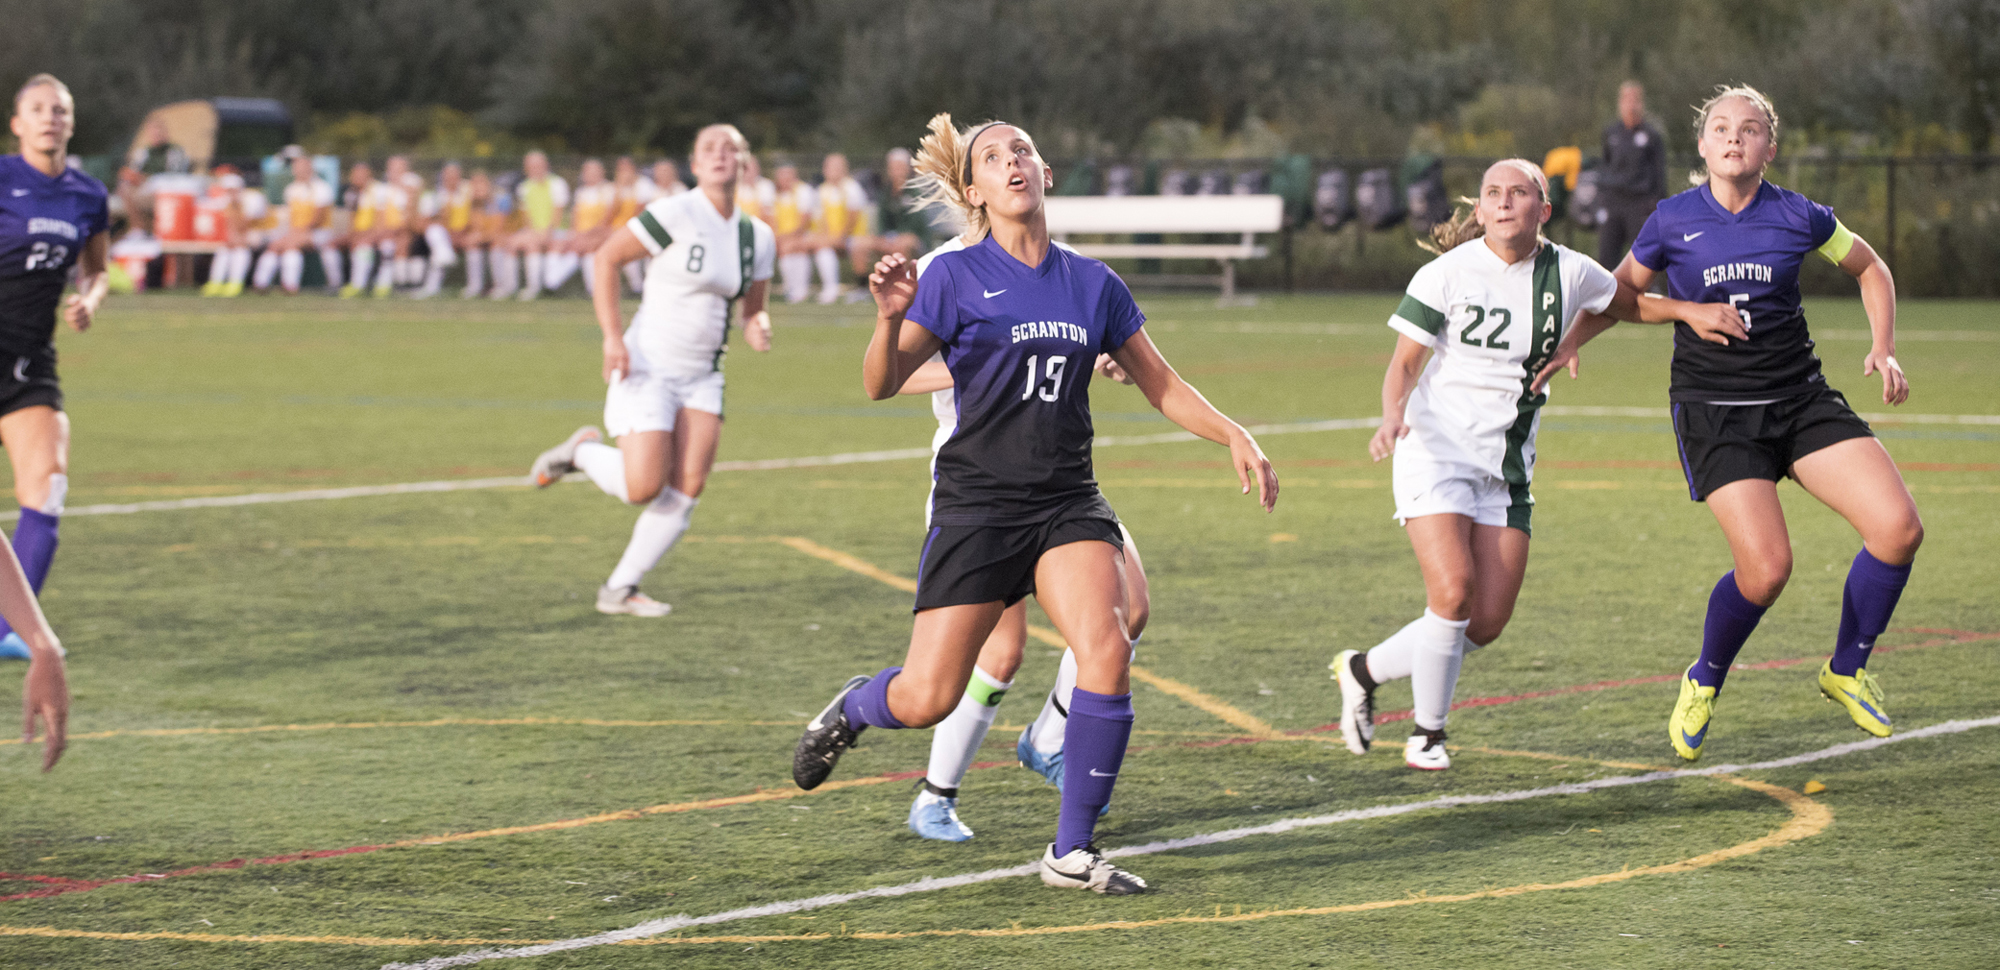 Sophomore forward Jamie Hreniuk scored twice, including the game-winner in overtime, on Saturday at Susquehanna.